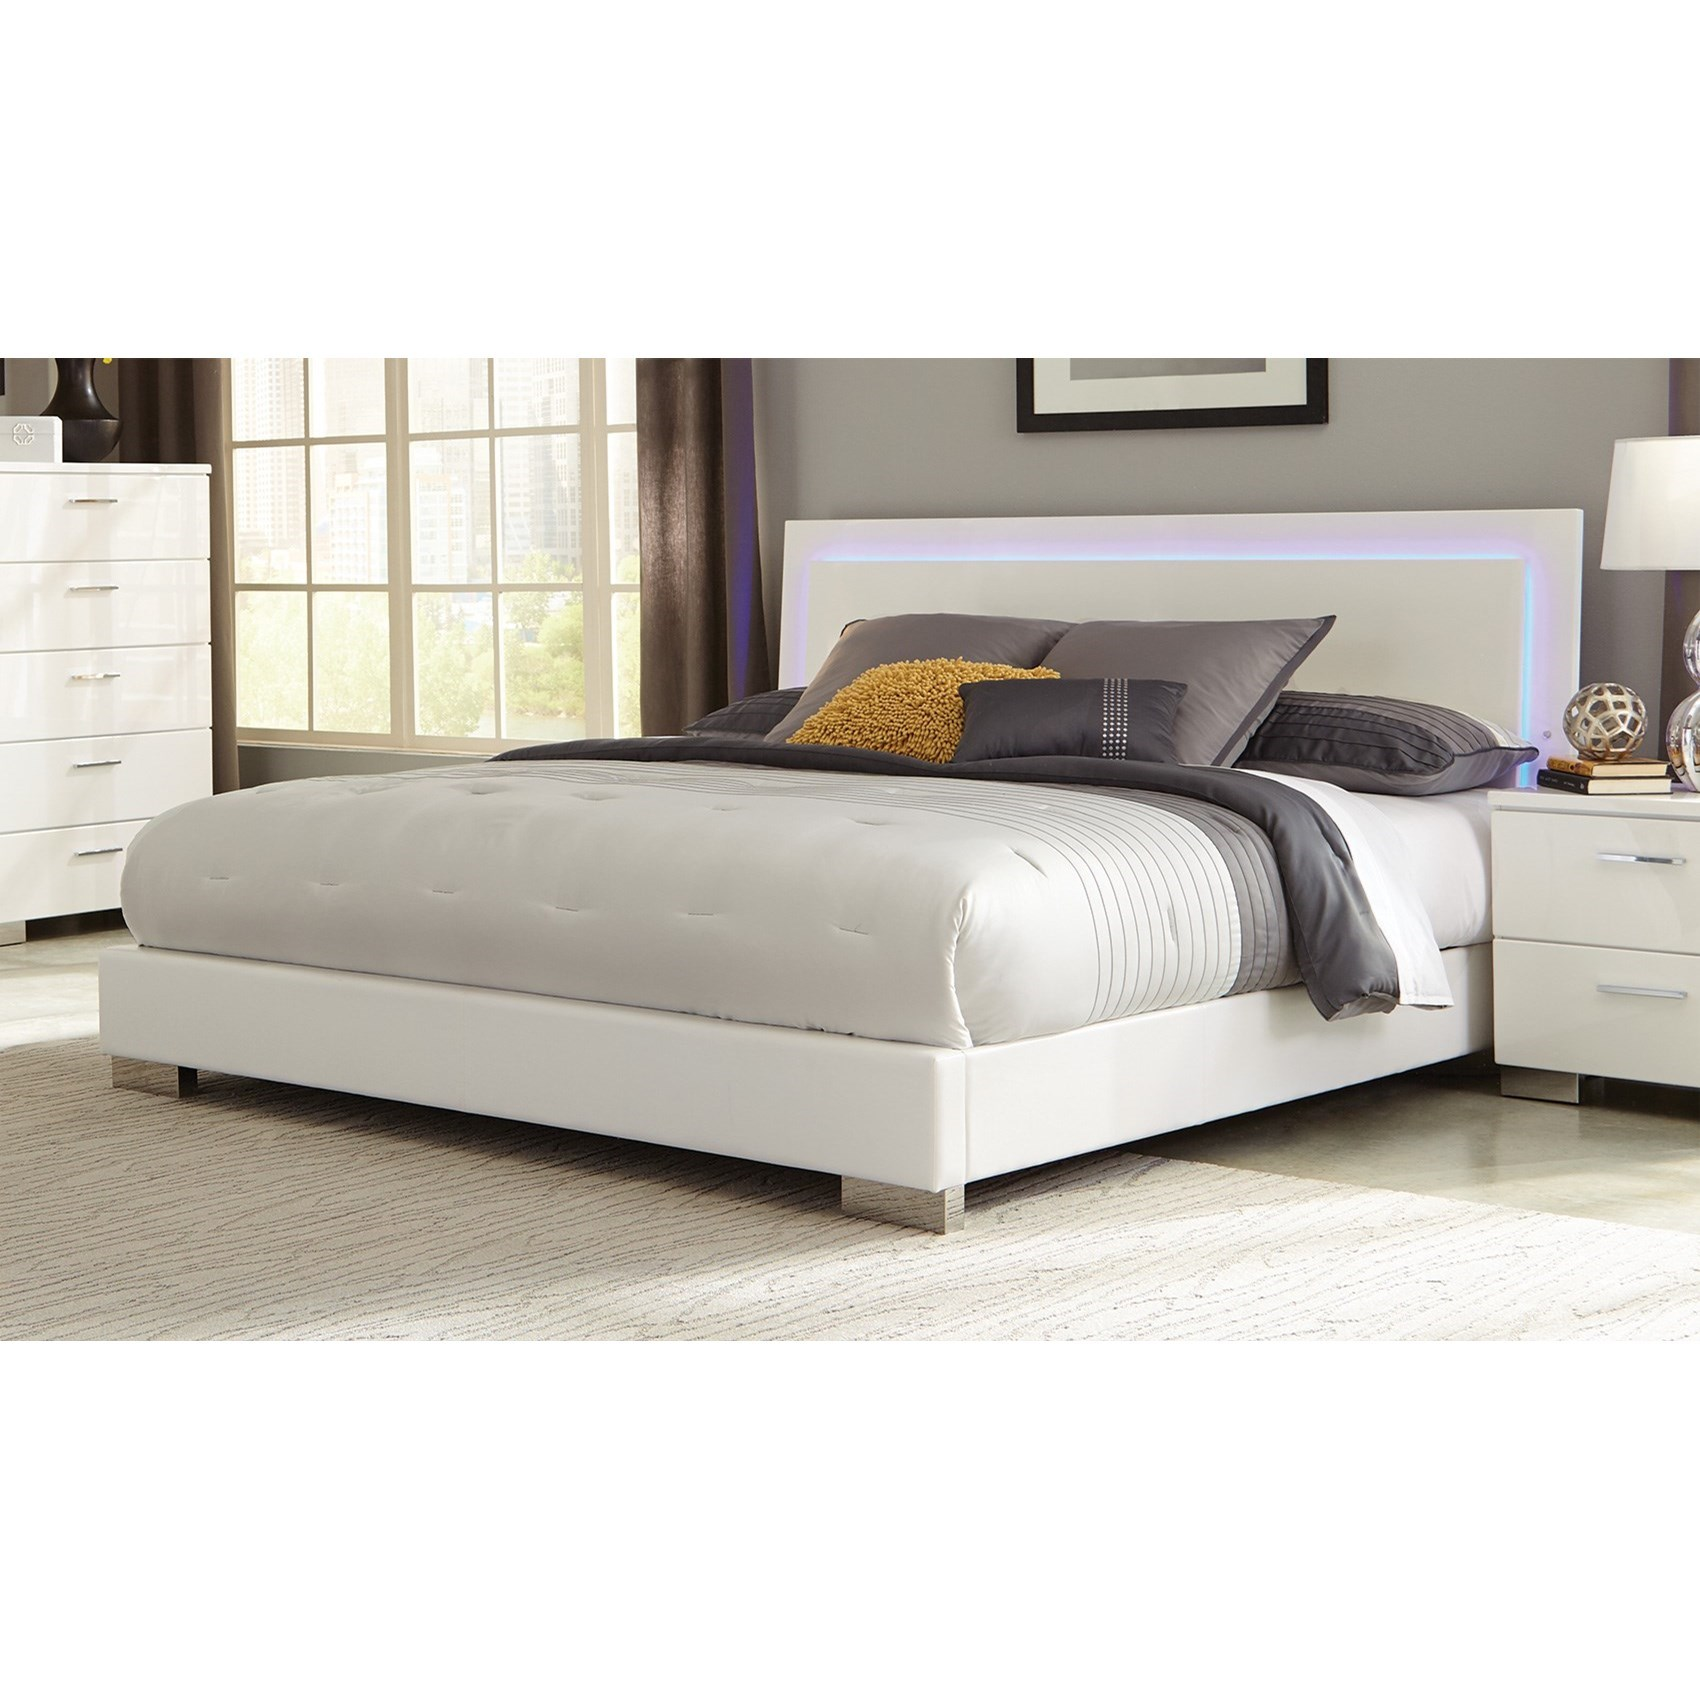 Coaster felicity 203500q queen low profile bed with led for Lighted platform bed